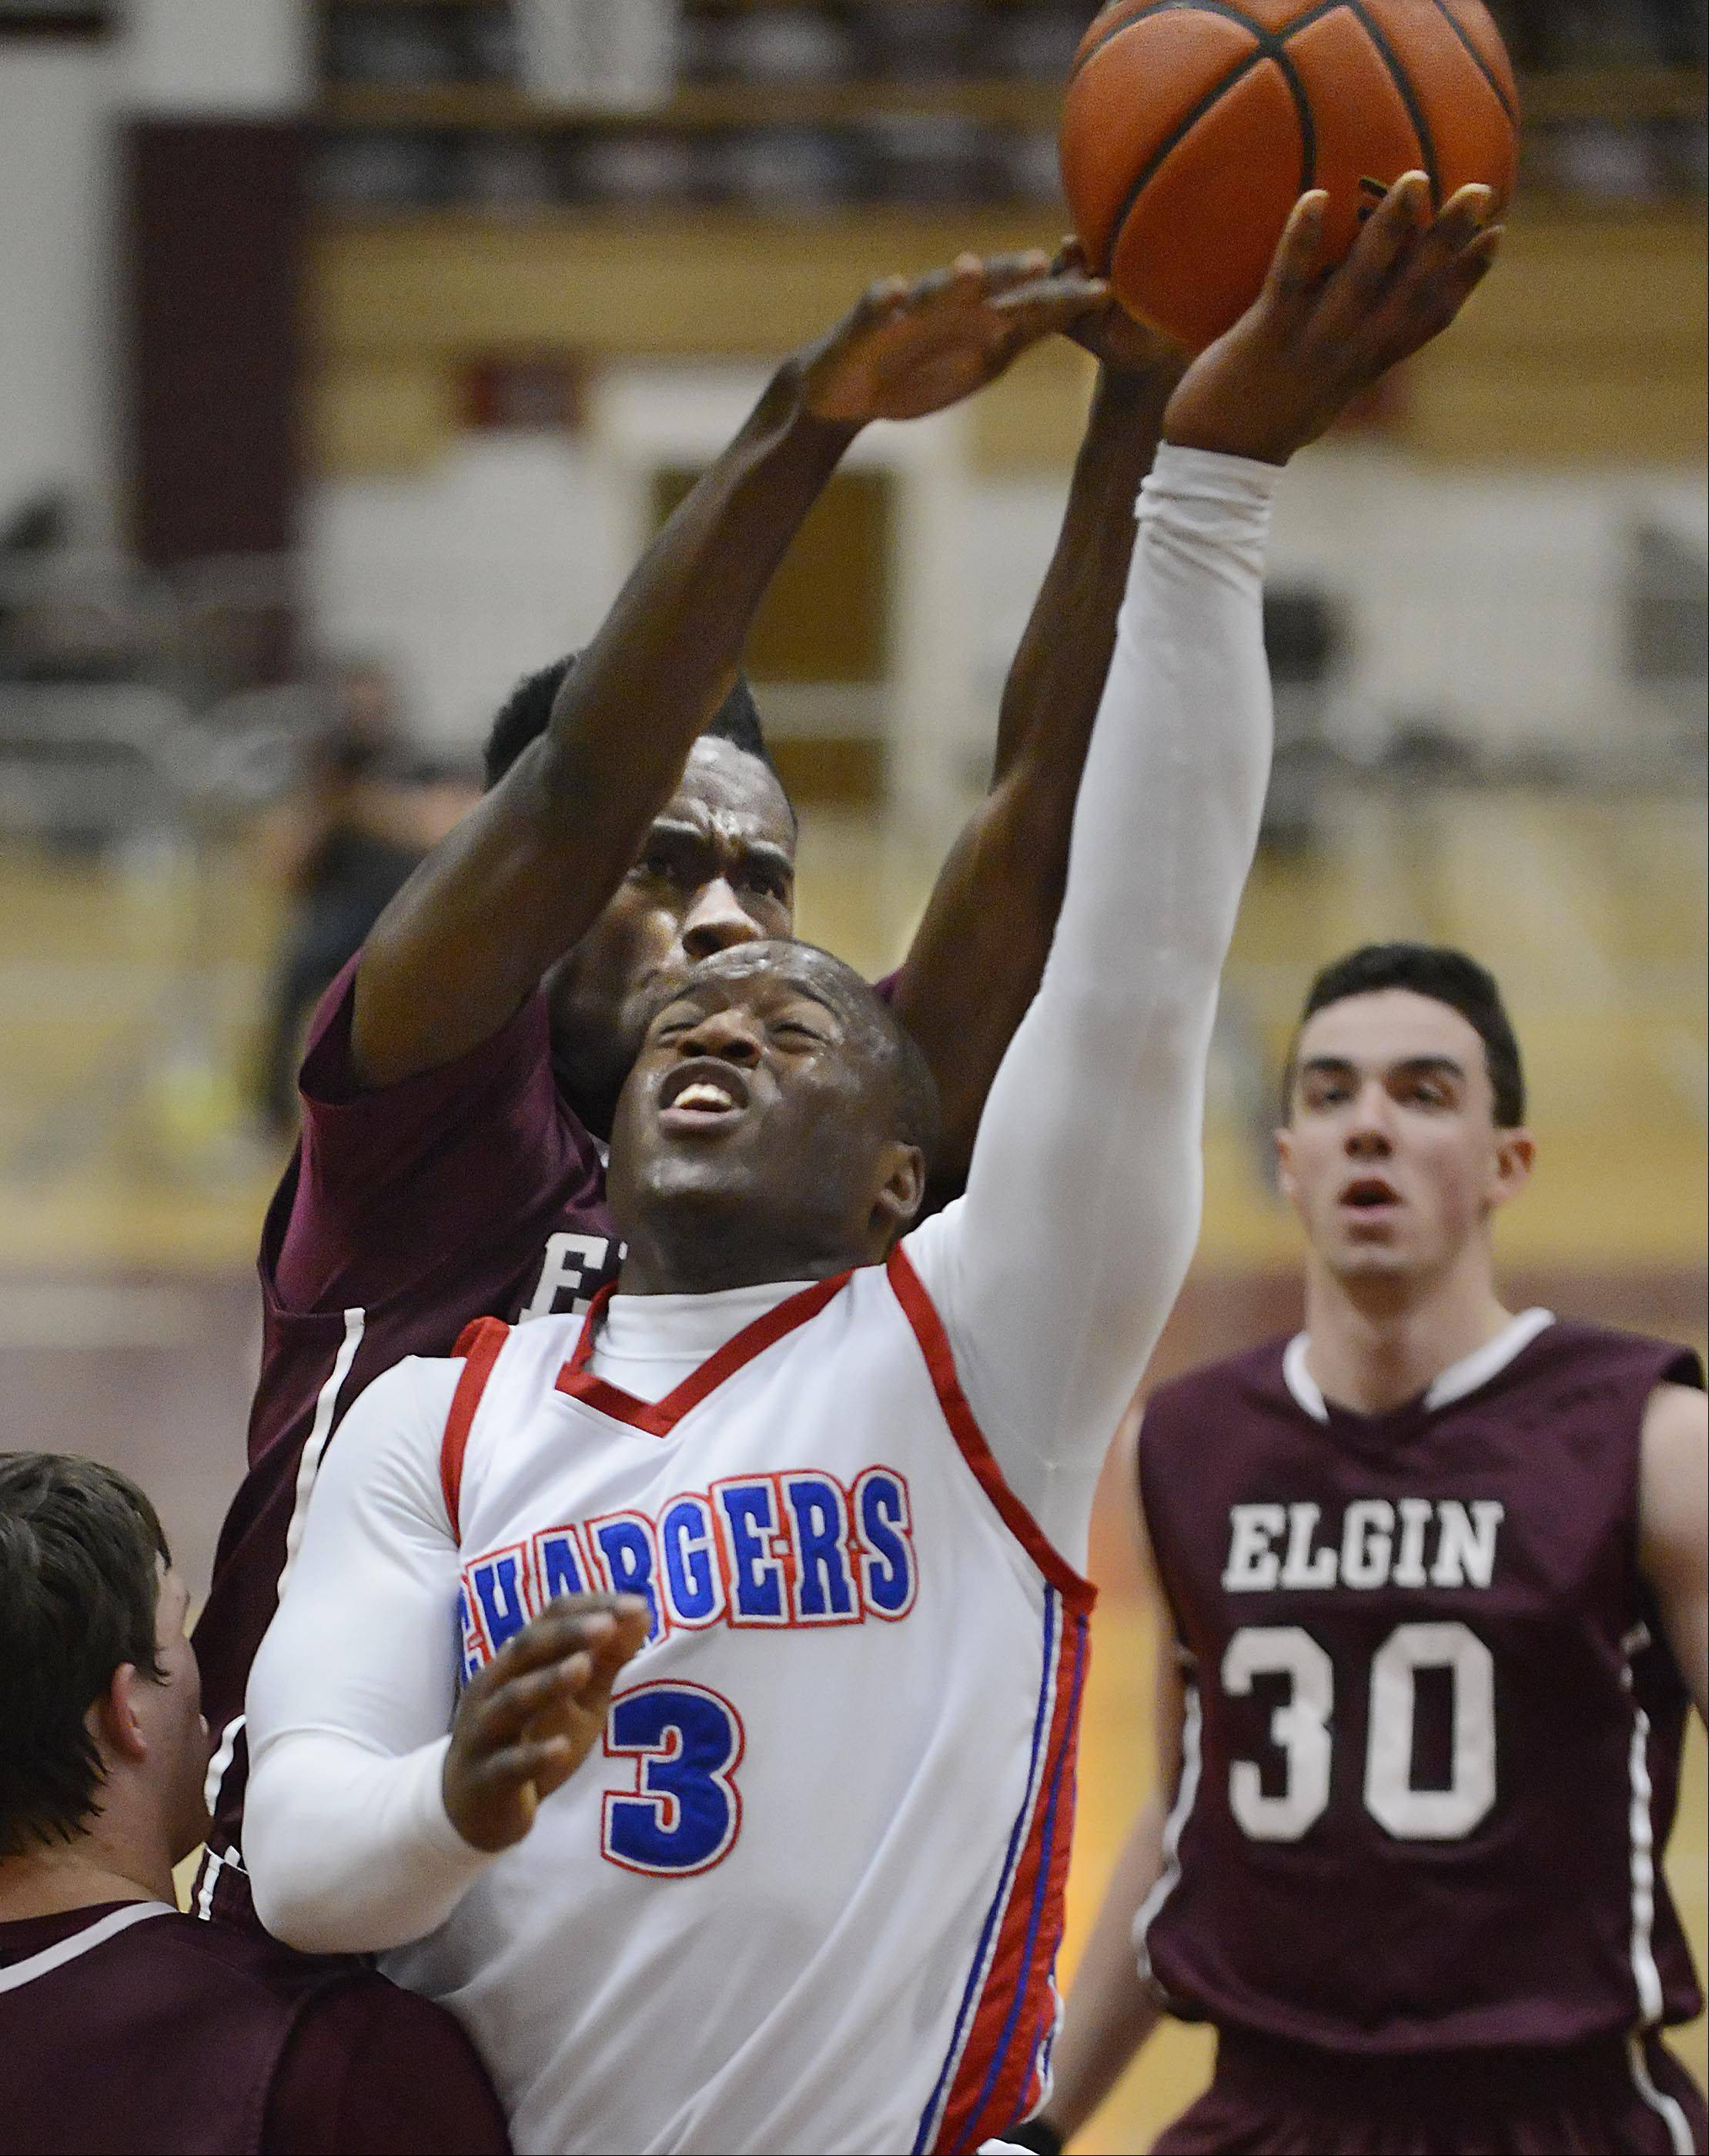 Elgin's Desmond Sanders fouls Dundee-Crown's Cordero Parson as he blocks his shot Thursday in the quarterfinal game of the Elgin Holiday Tournament.